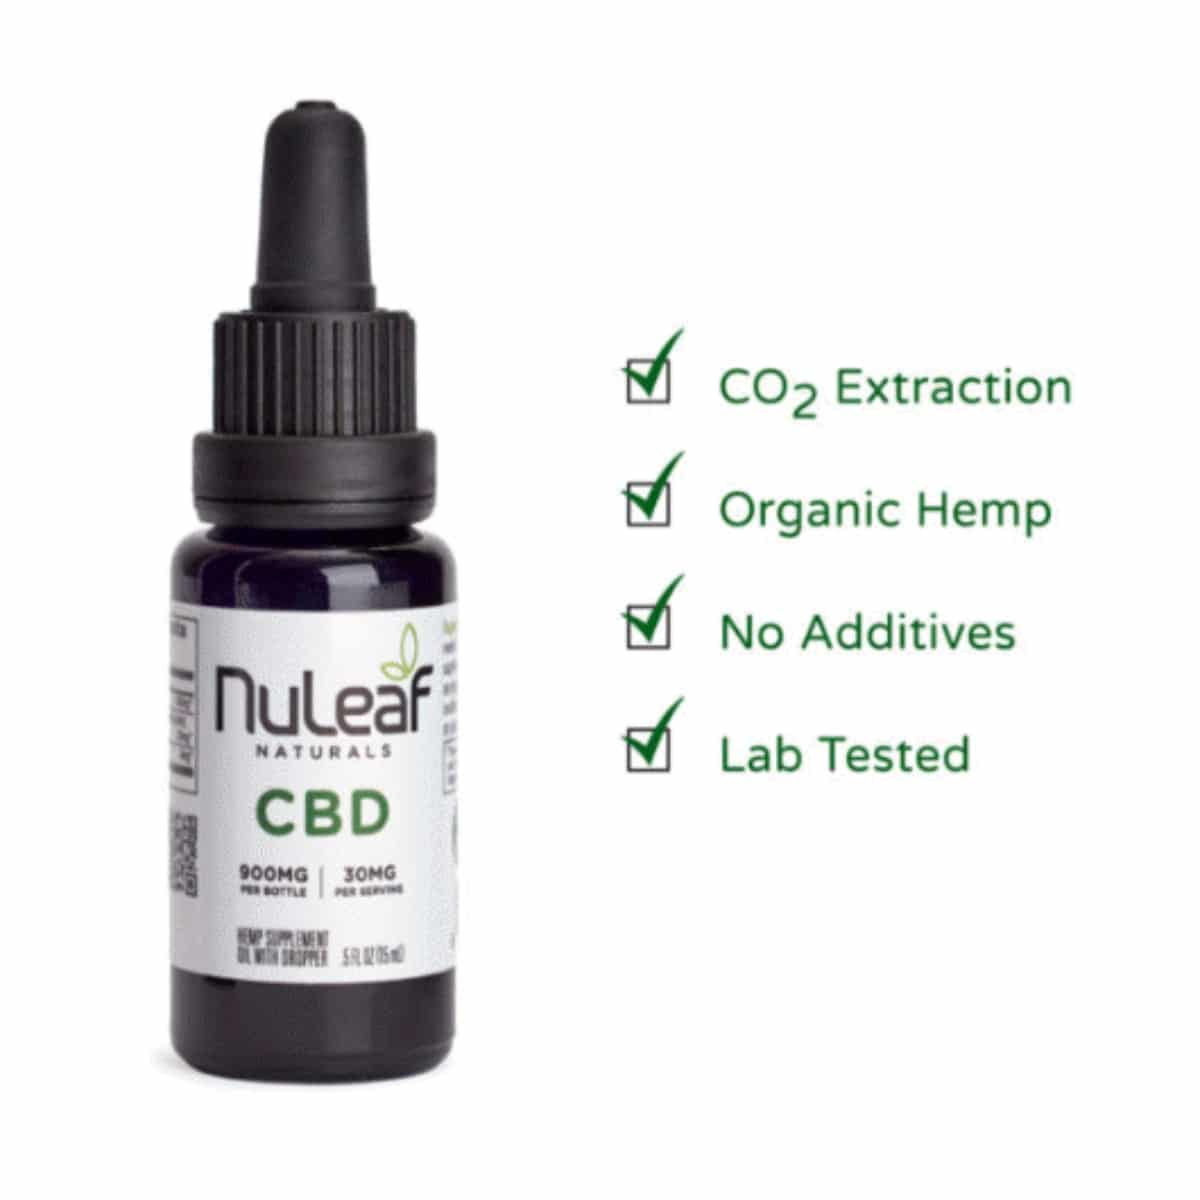 NuLeaf Naturals 900mg Full Spectrum Hemp CBD Oil